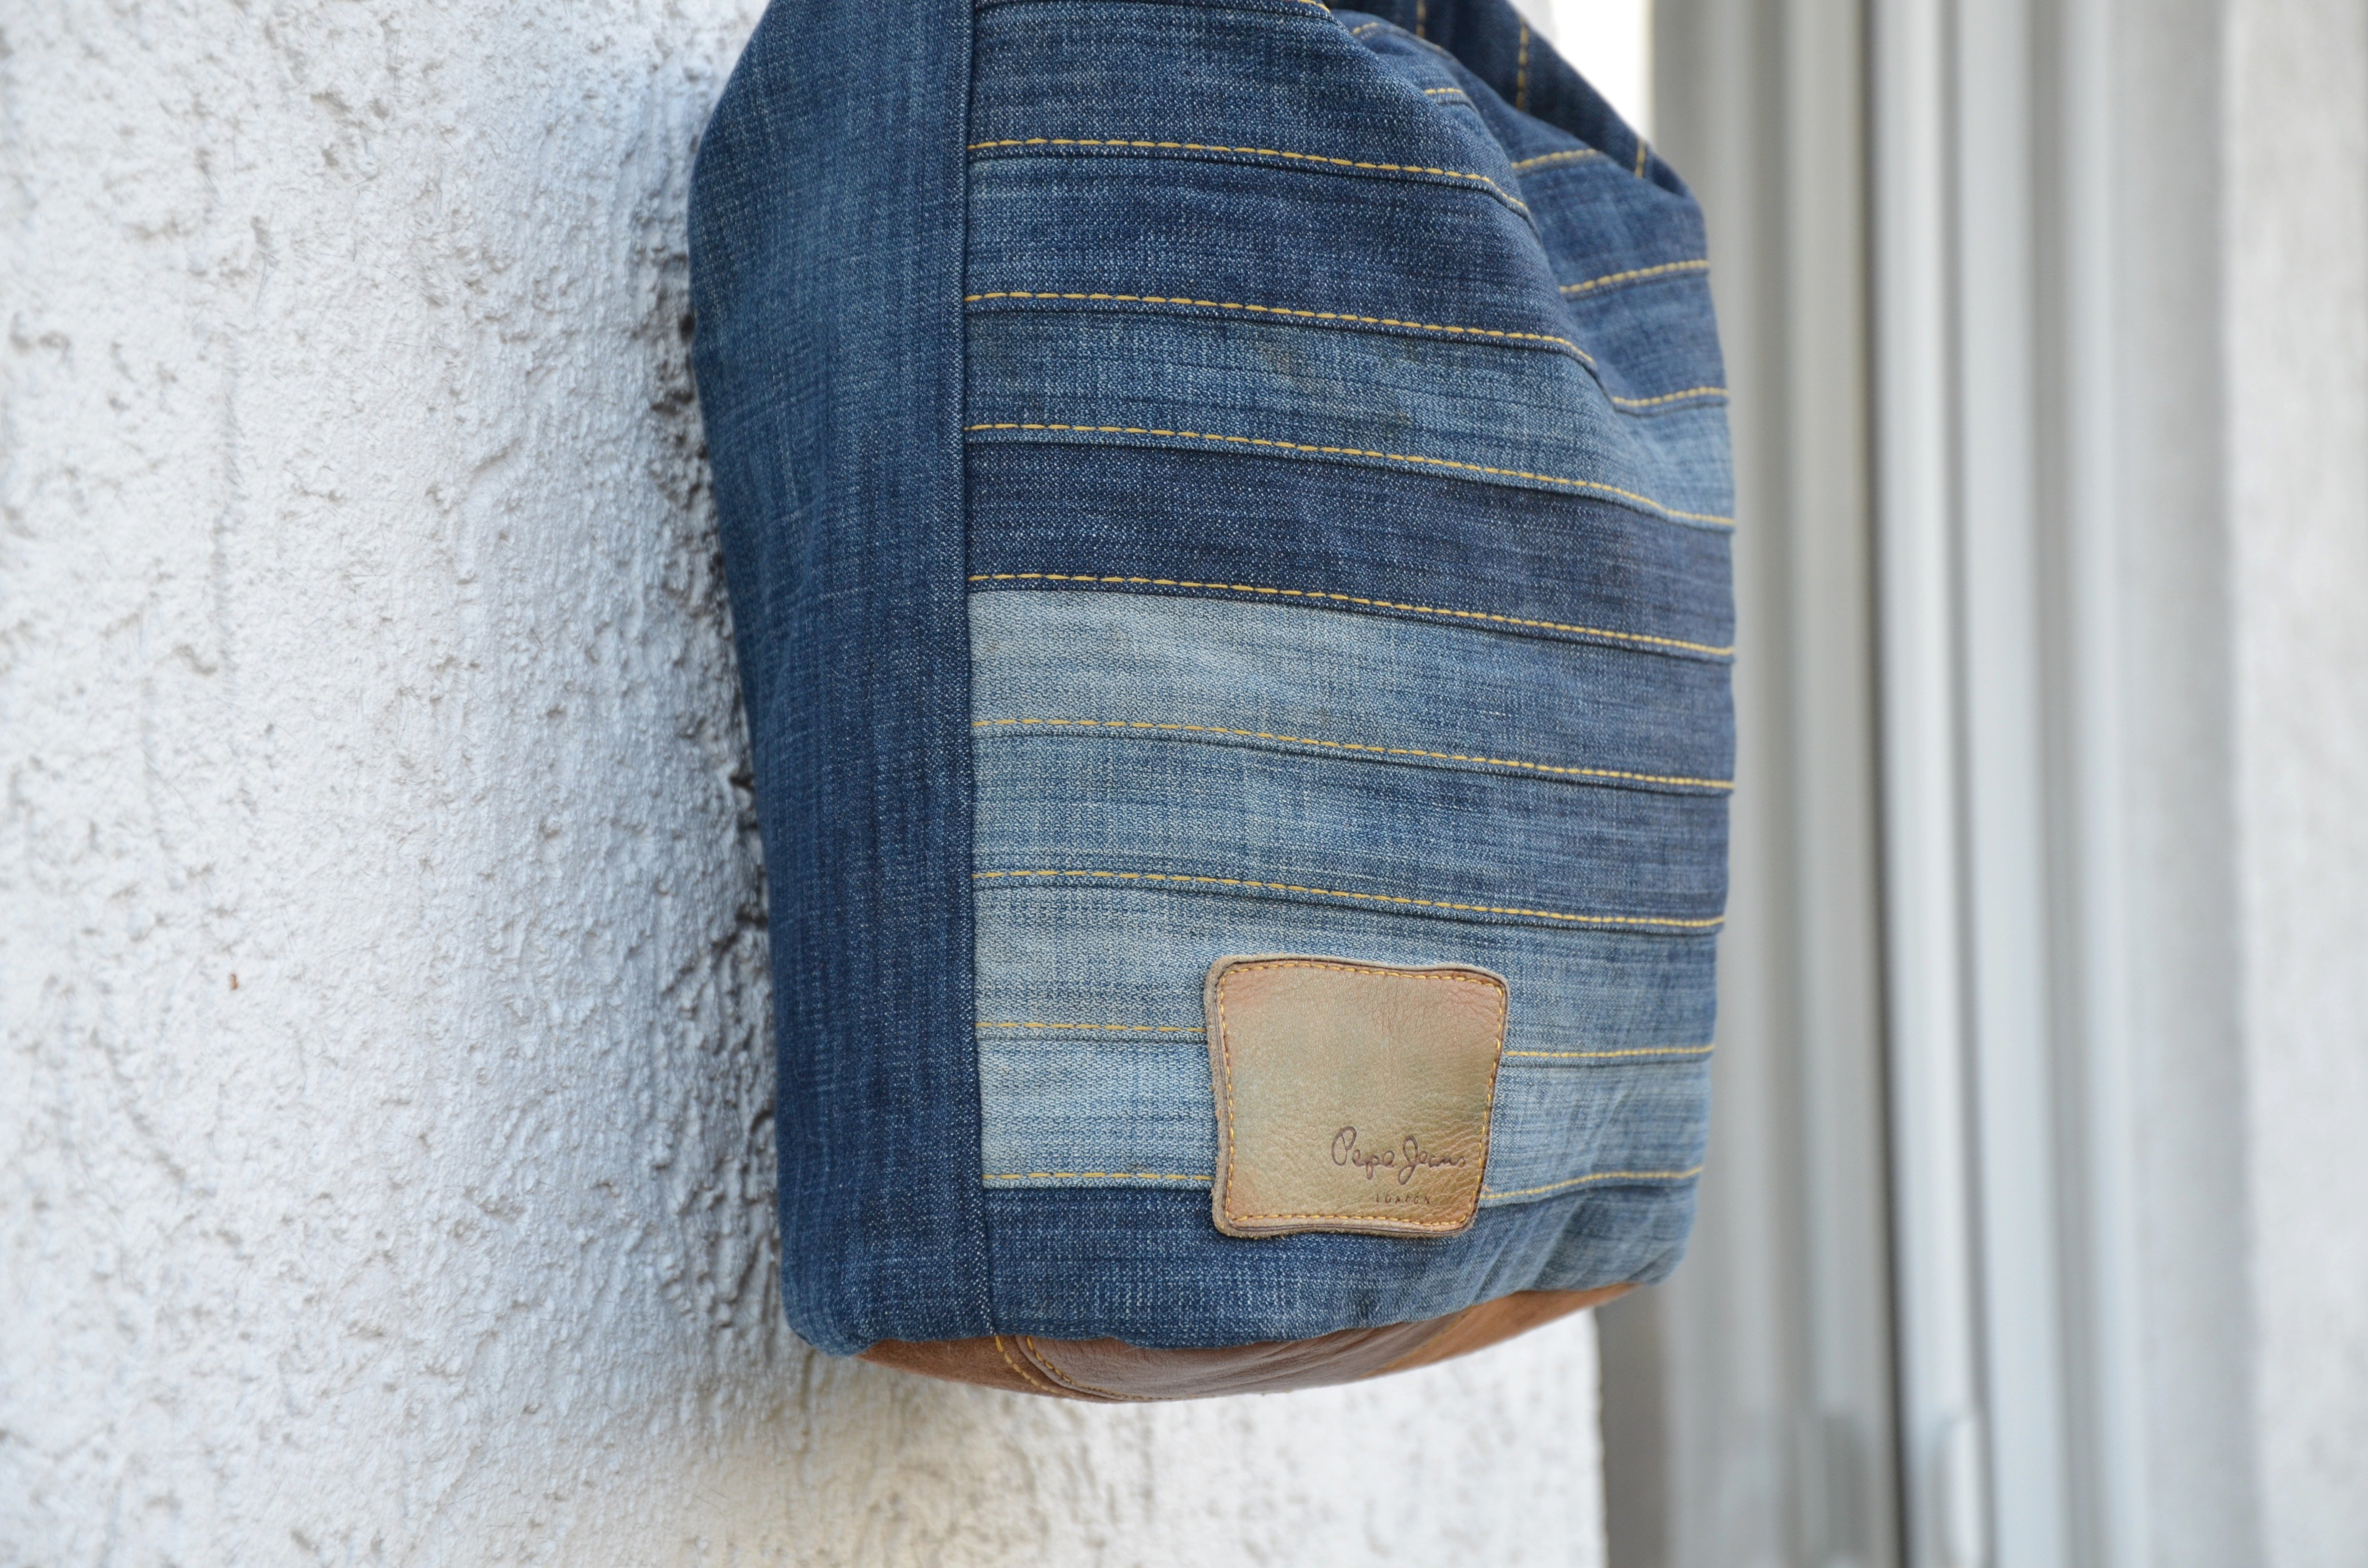 Tasche_aus_Jeans_Upcycling